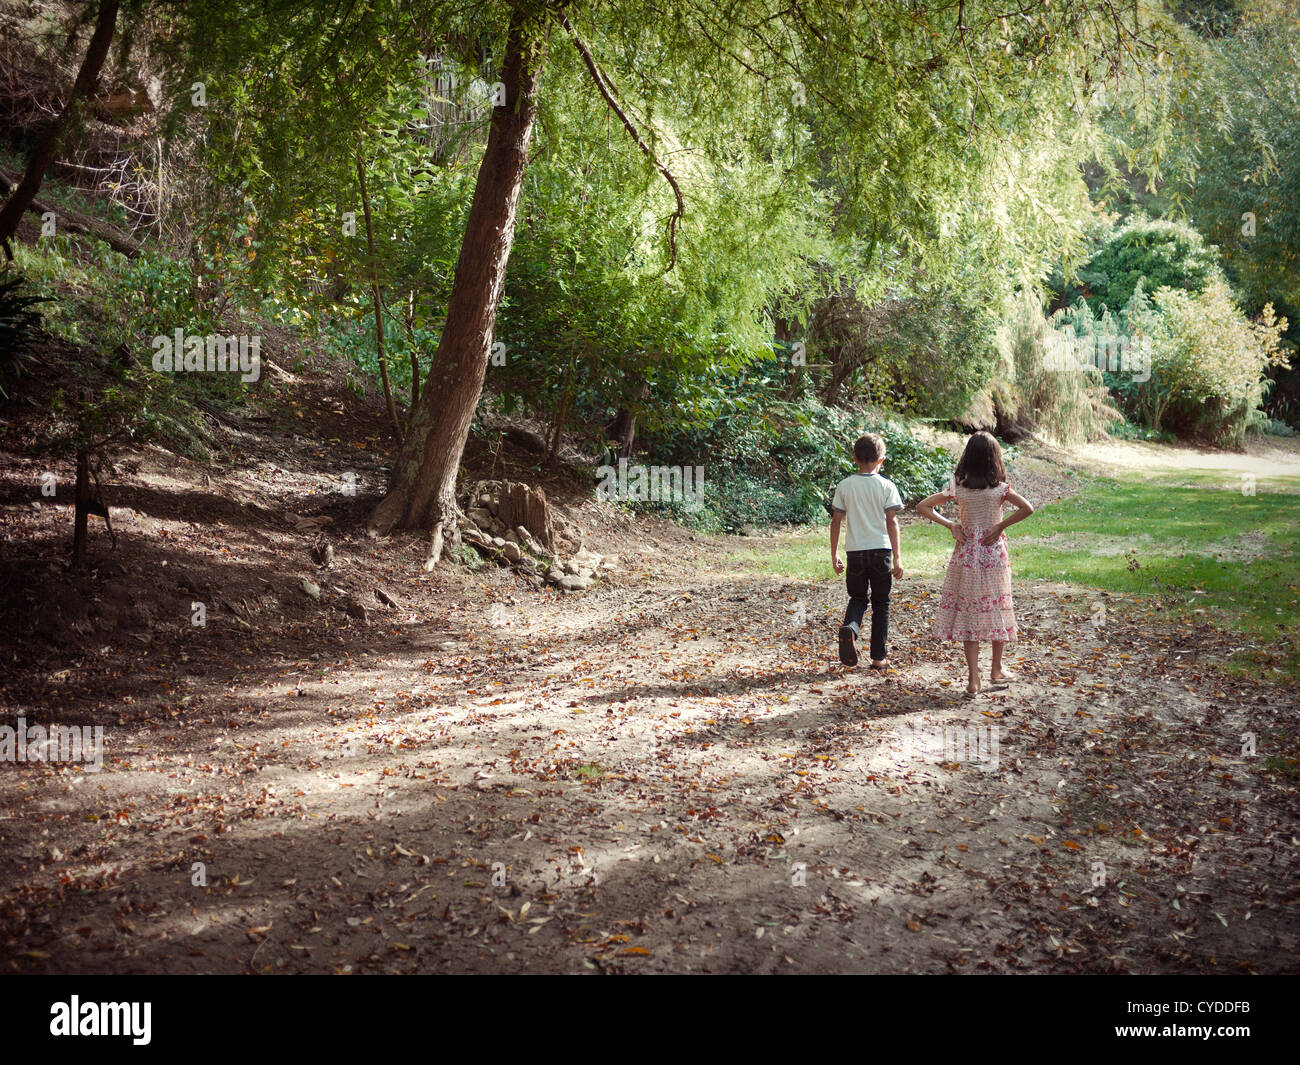 Boy and girl walk along woodland path in afternoon sun - Stock Image